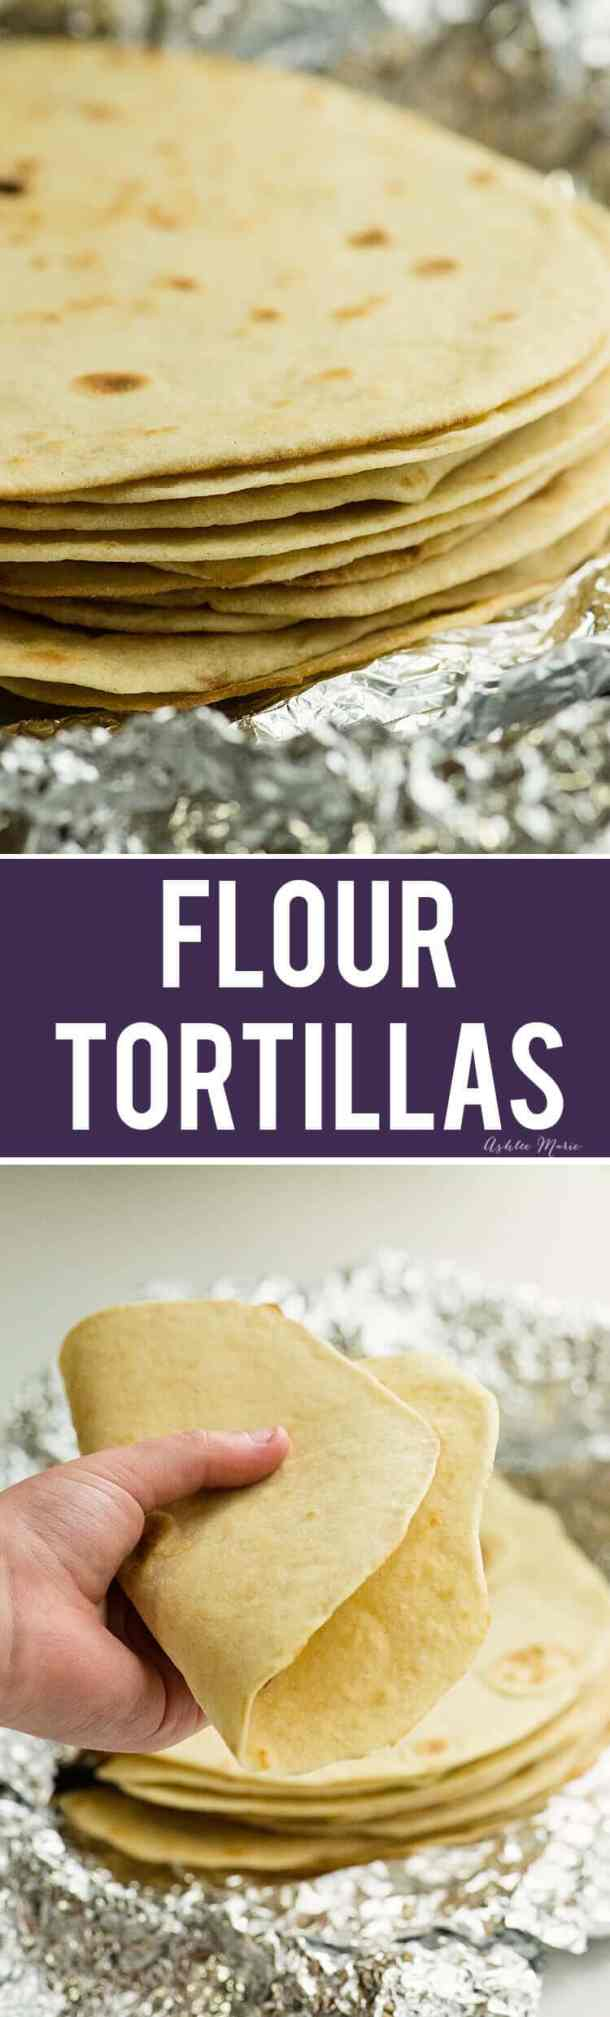 these homemade flour tortillas are easy to make and delicious - video tutorial